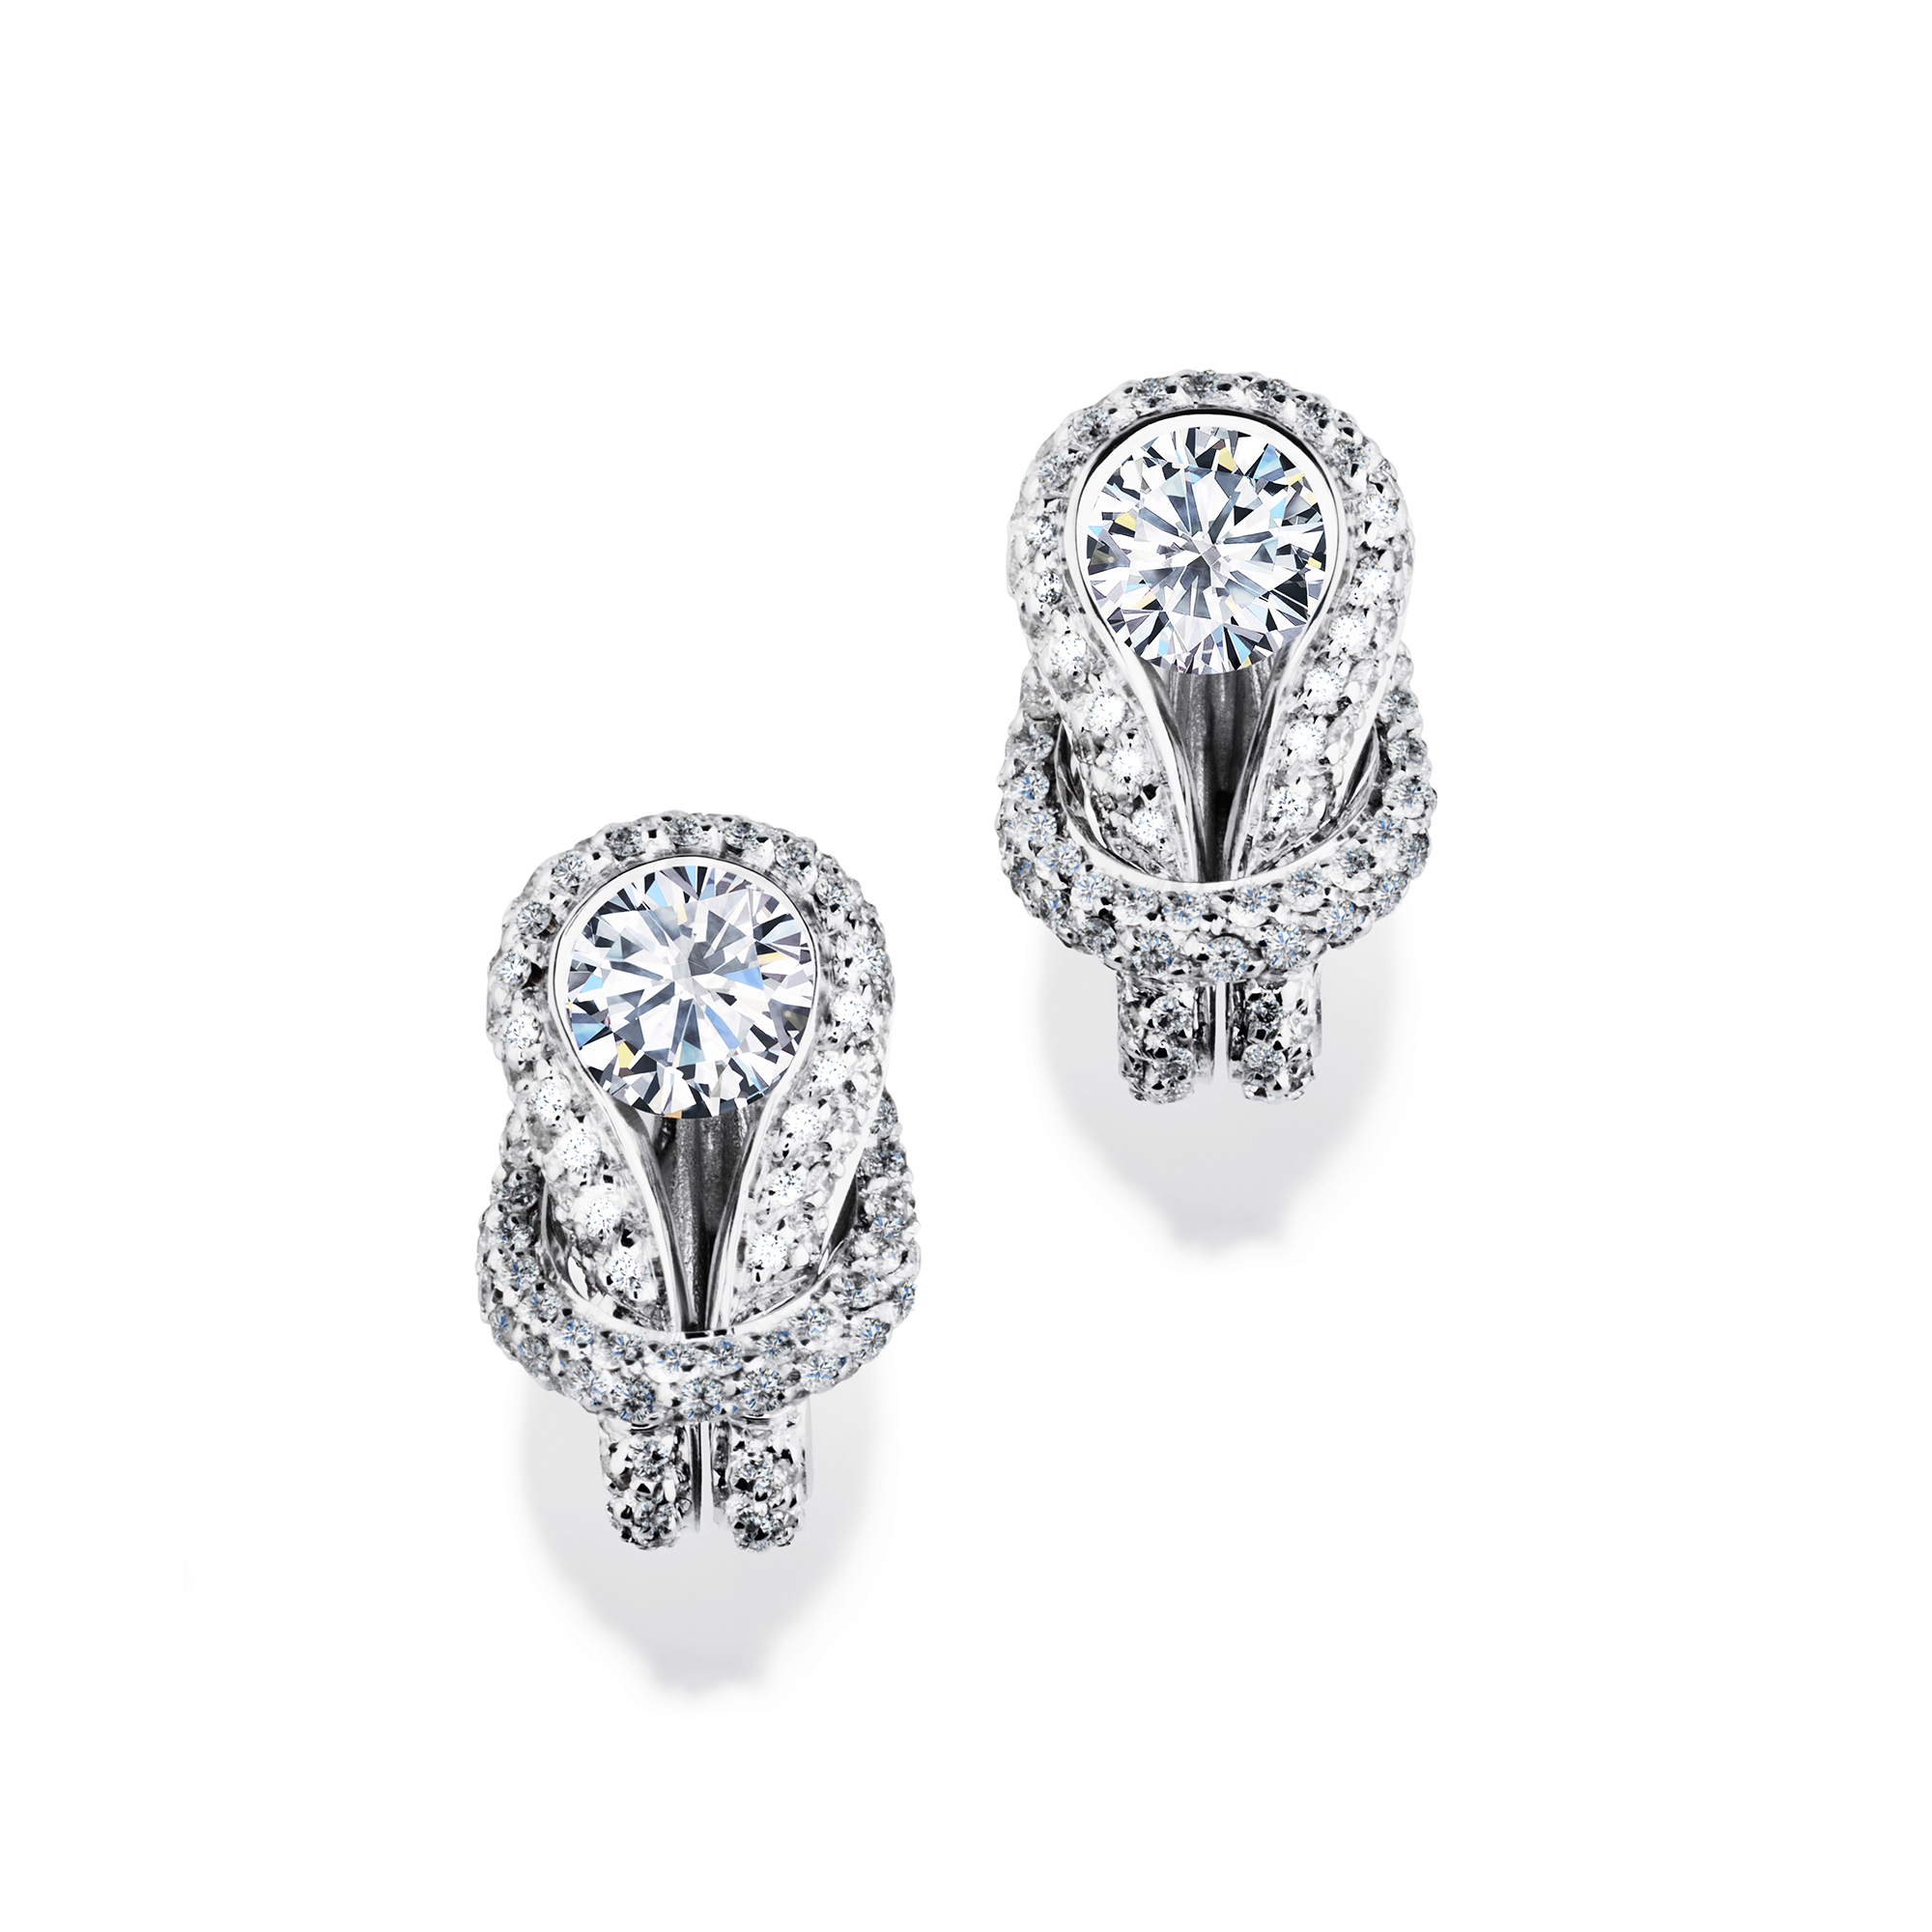 pid studs earrings solitaire jewellery diamond products stud